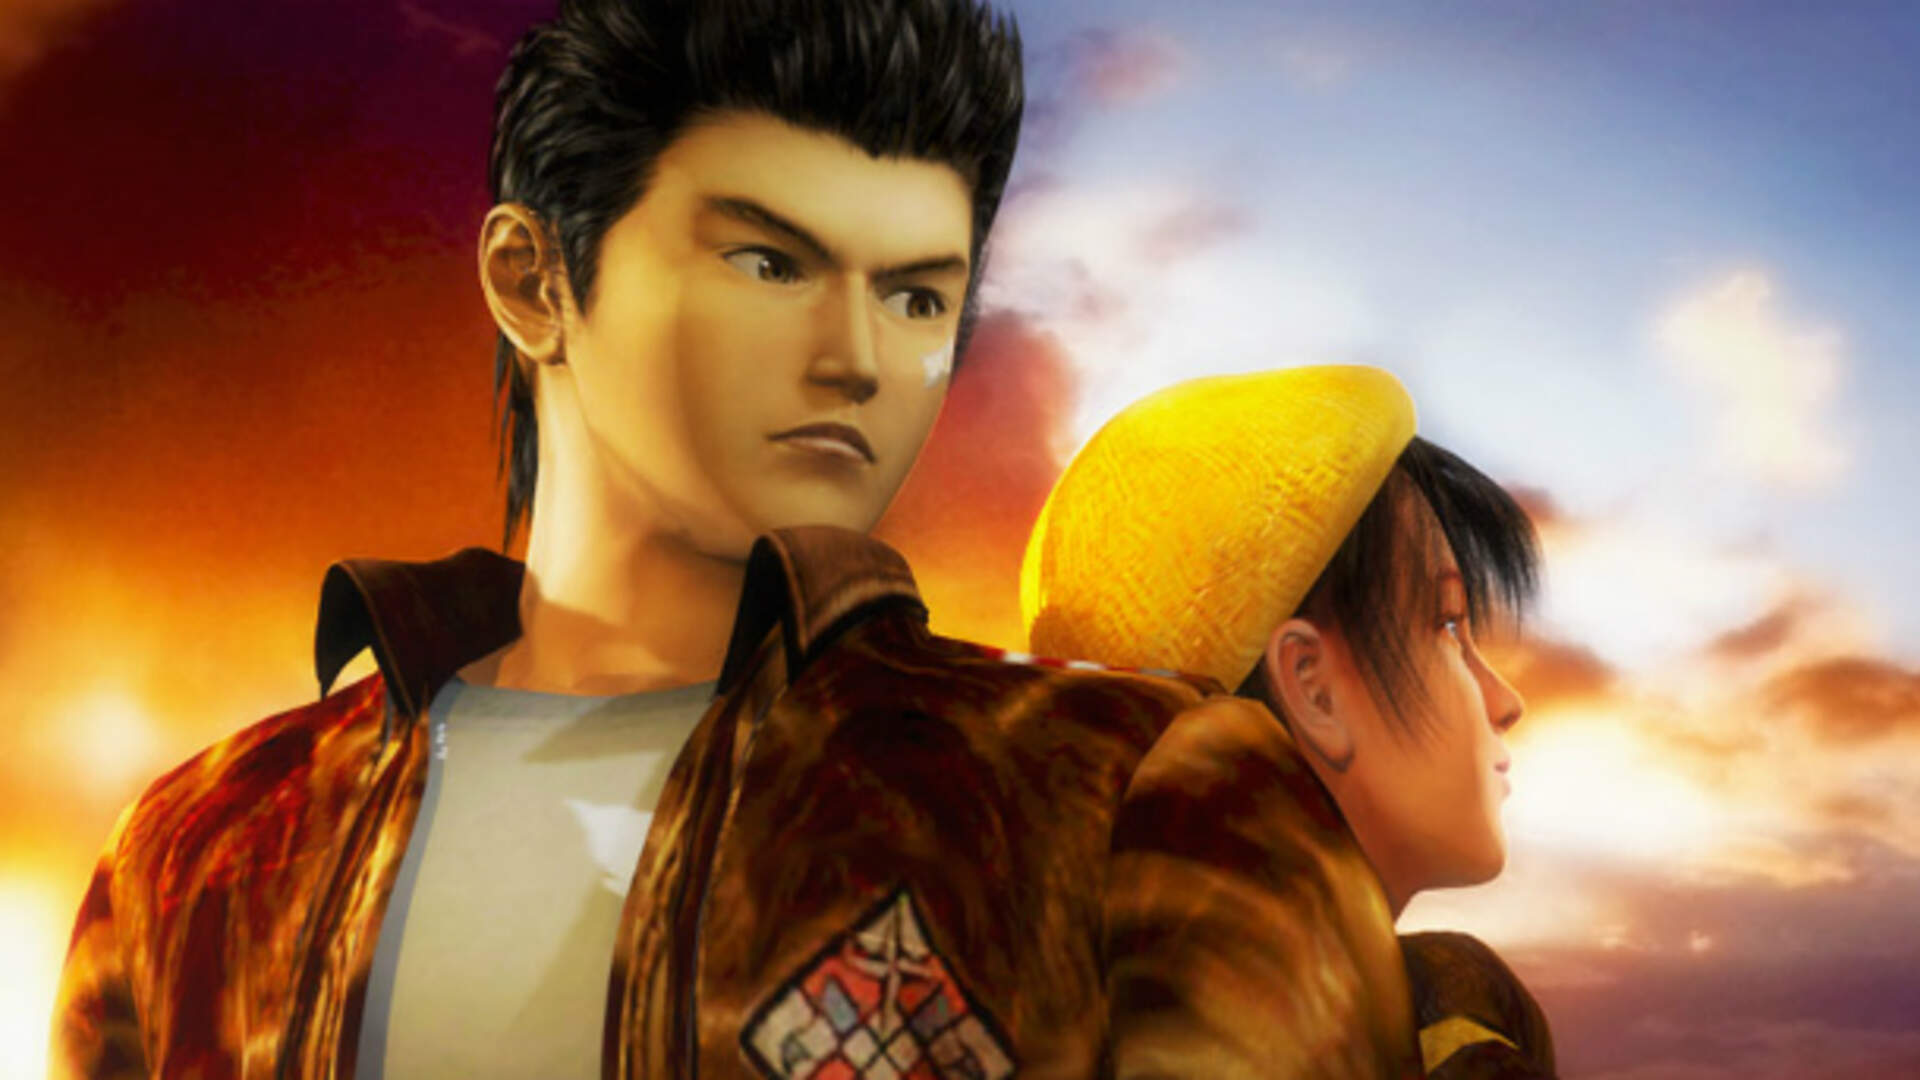 The Shenmue 3 PC Requirements Have Been Revealed, and You're Going to Need a Lot of Hard Drive Space